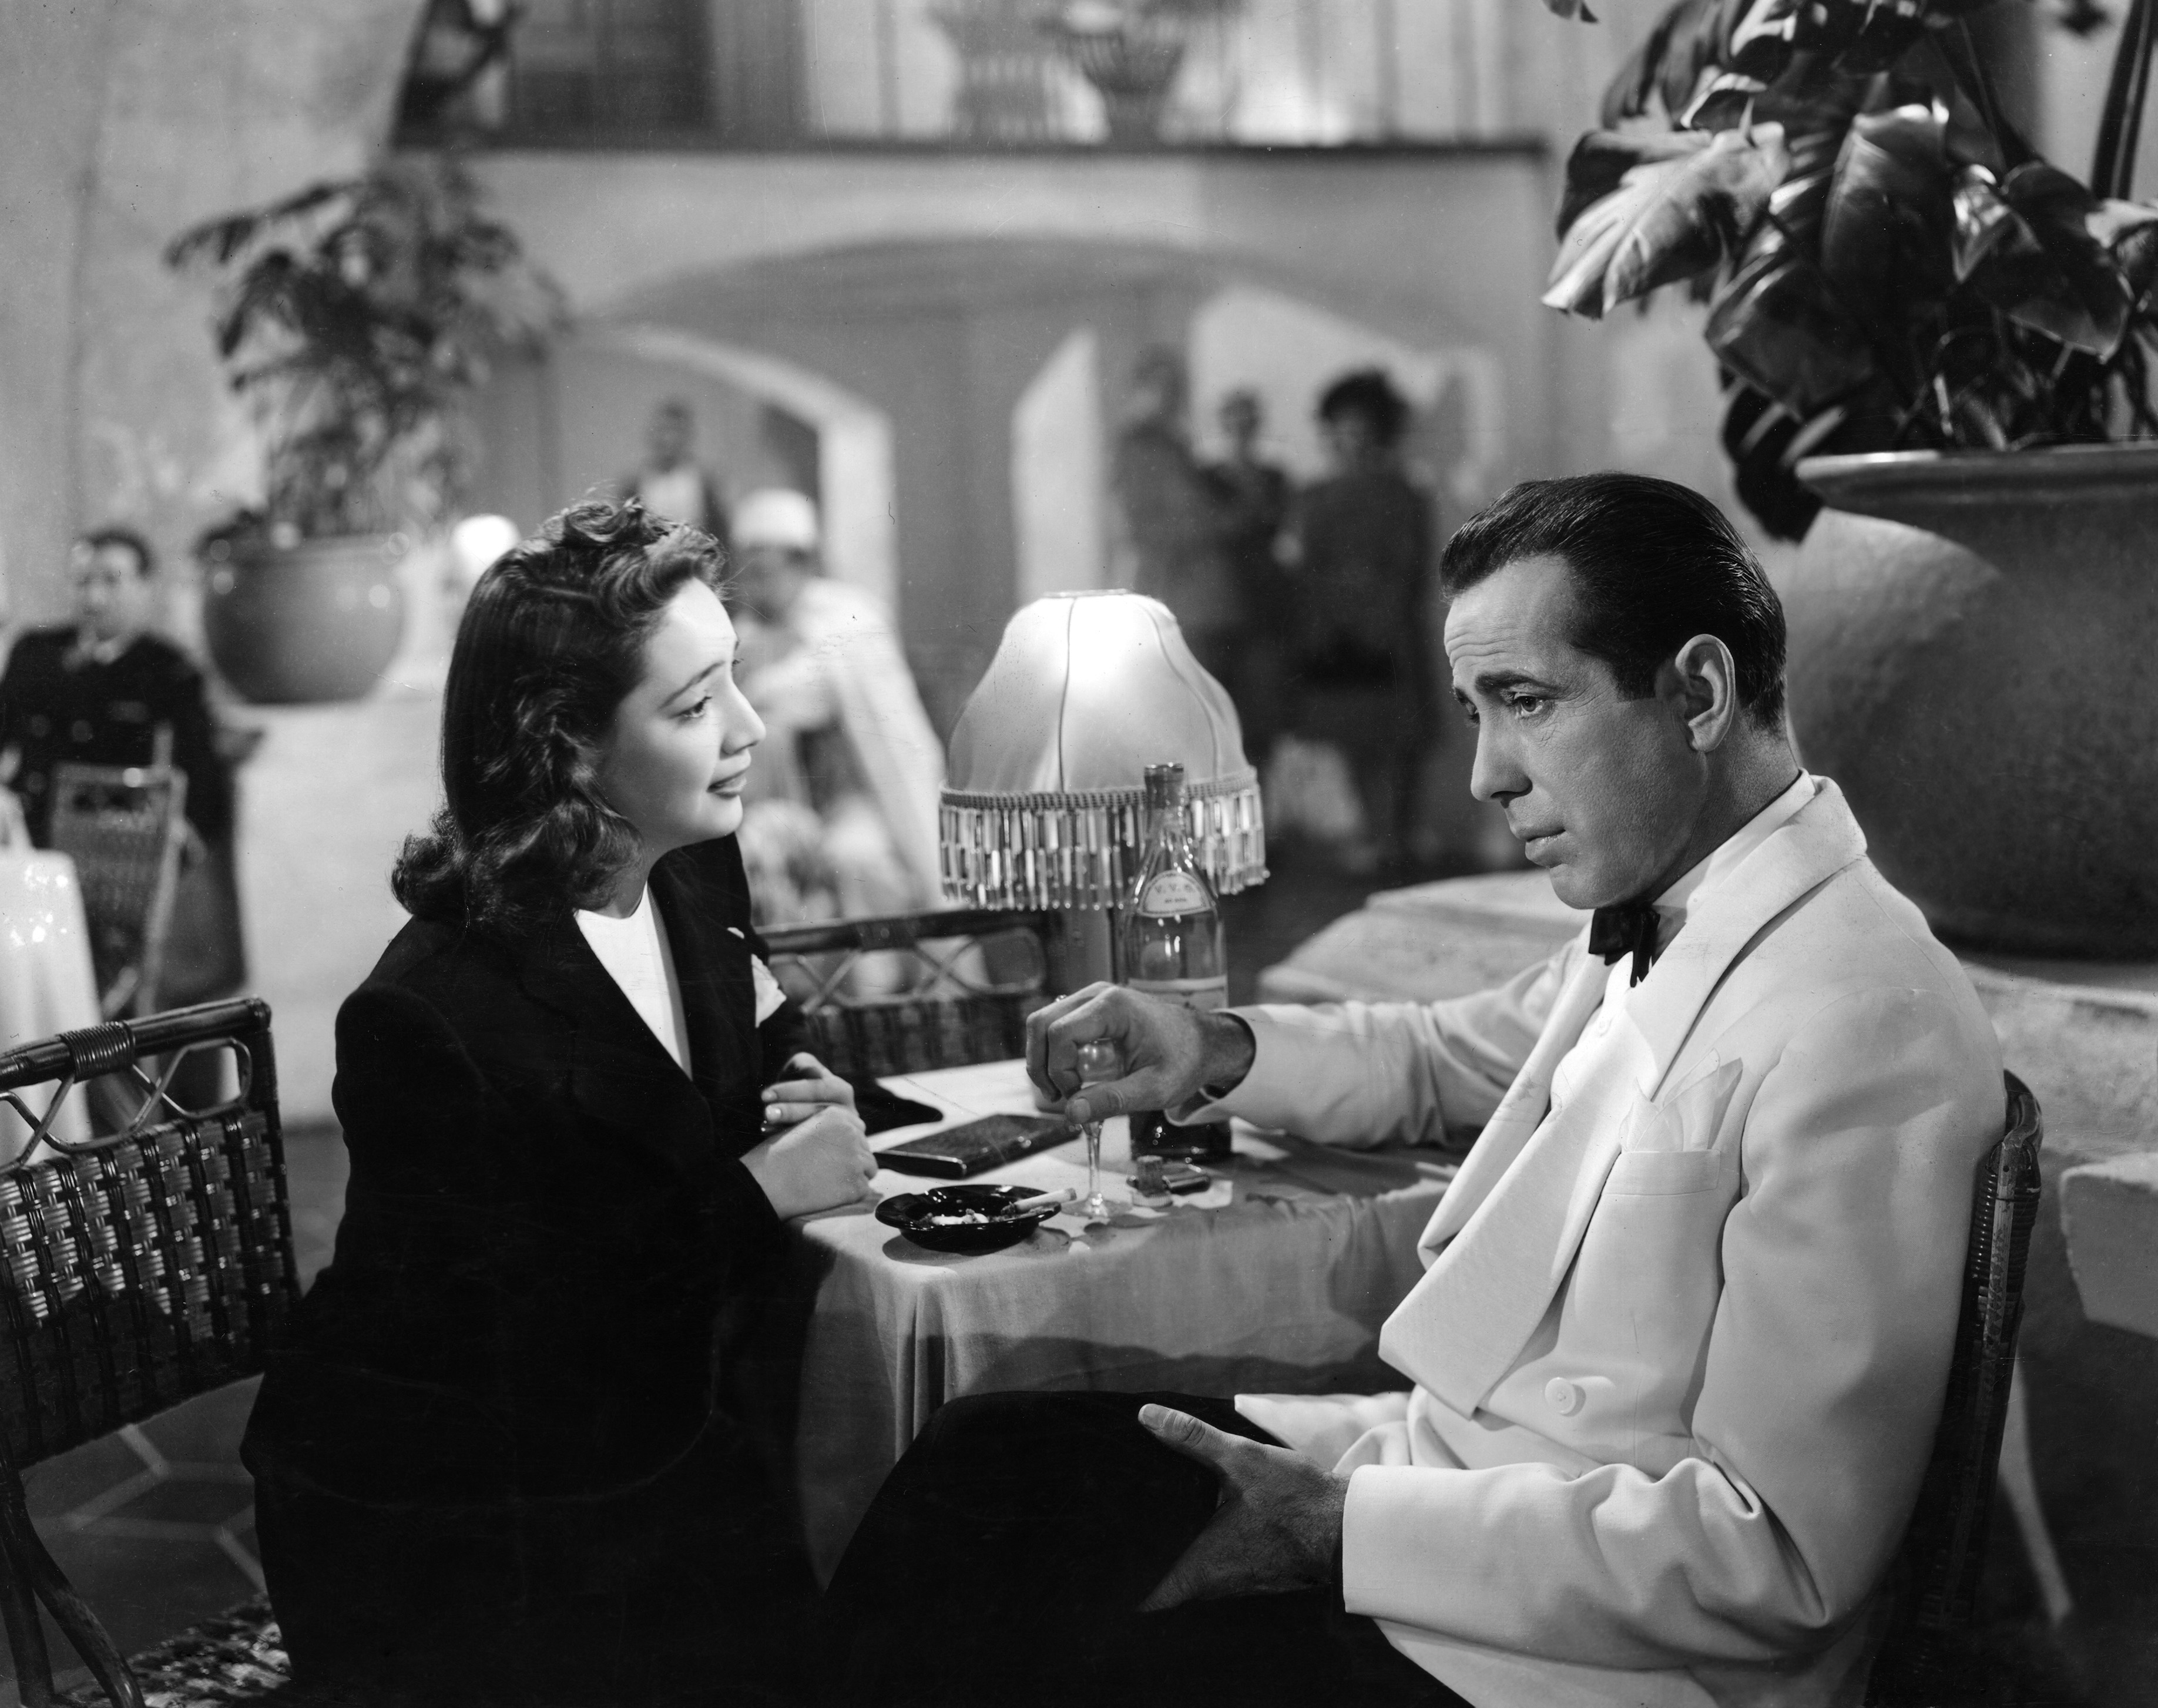 an analysis of the technical aspects of a scene in the movie casablanca A thematic analysis of alfred hitchcock's psycho, free study guides and book notes including comprehensive chapter analysis, complete summary analysis, author biography information, character profiles, theme analysis, metaphor analysis, and top ten quotes on classic literature.